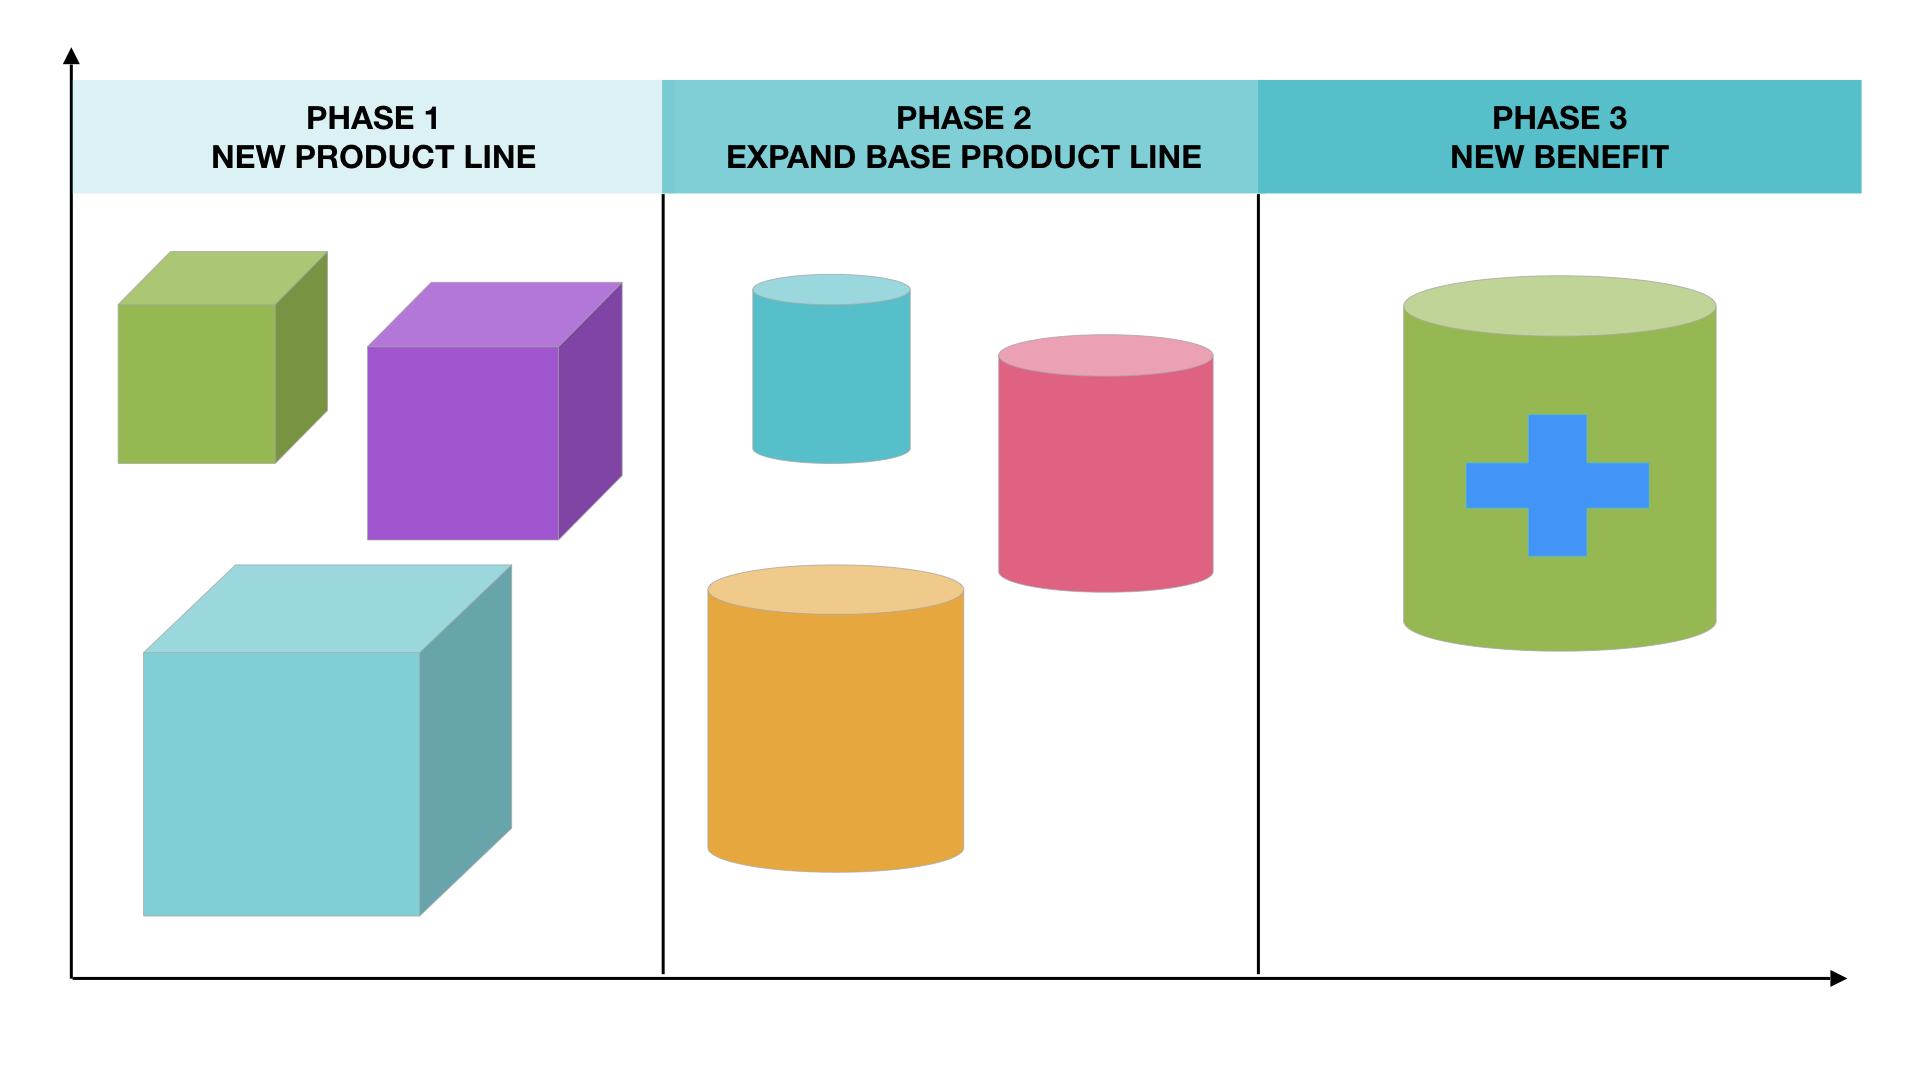 INNOVATION ROADMAP  For a Skin Care company, developed a plan to help launch a new line of products, expanding their footprint in retail